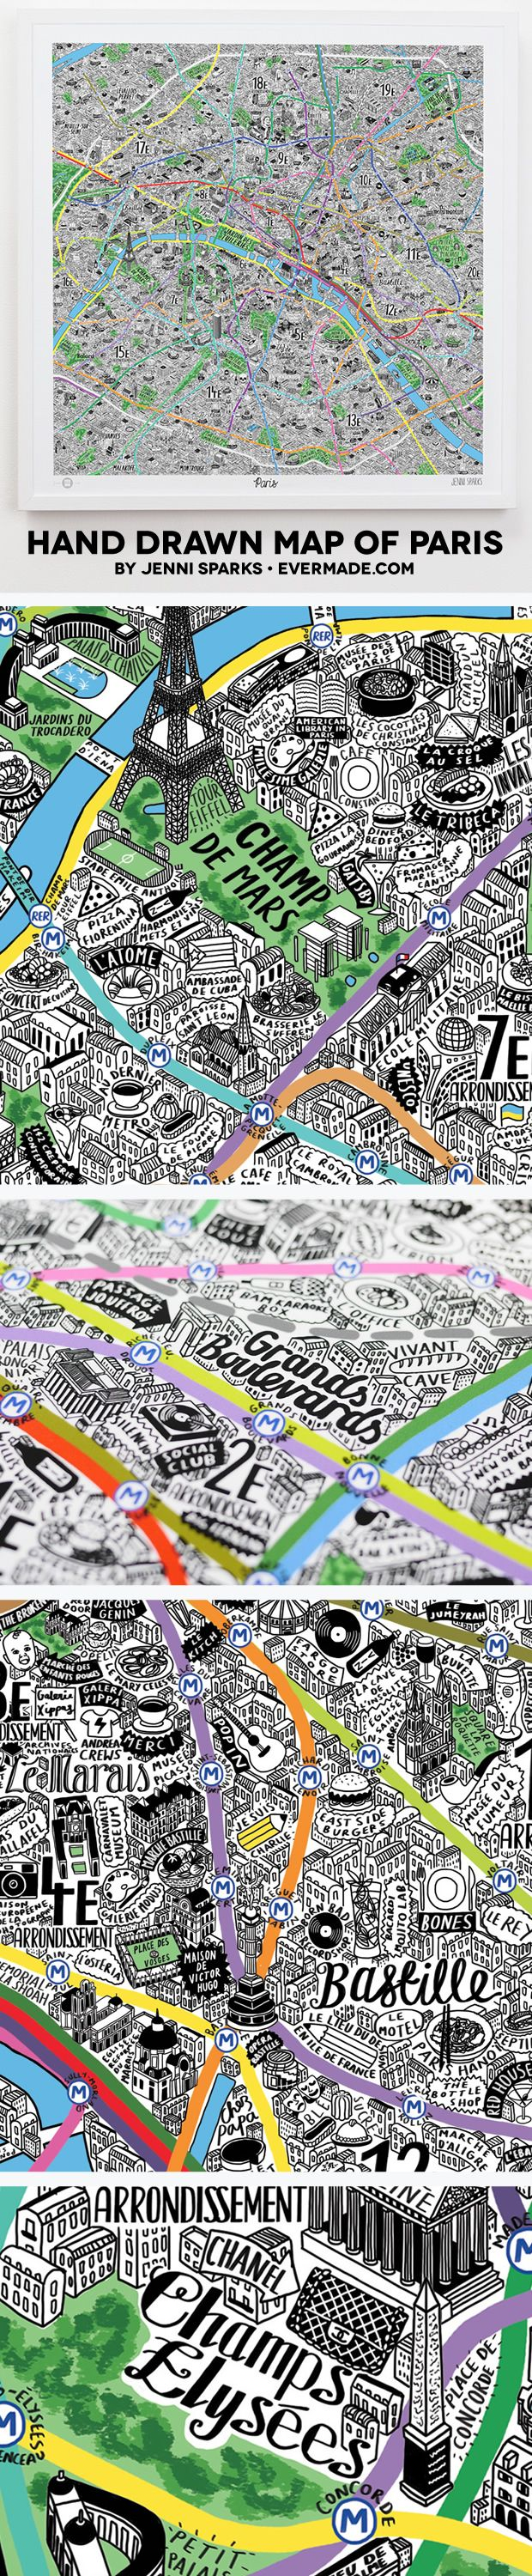 Paris Map Art Print from Evermadecom design